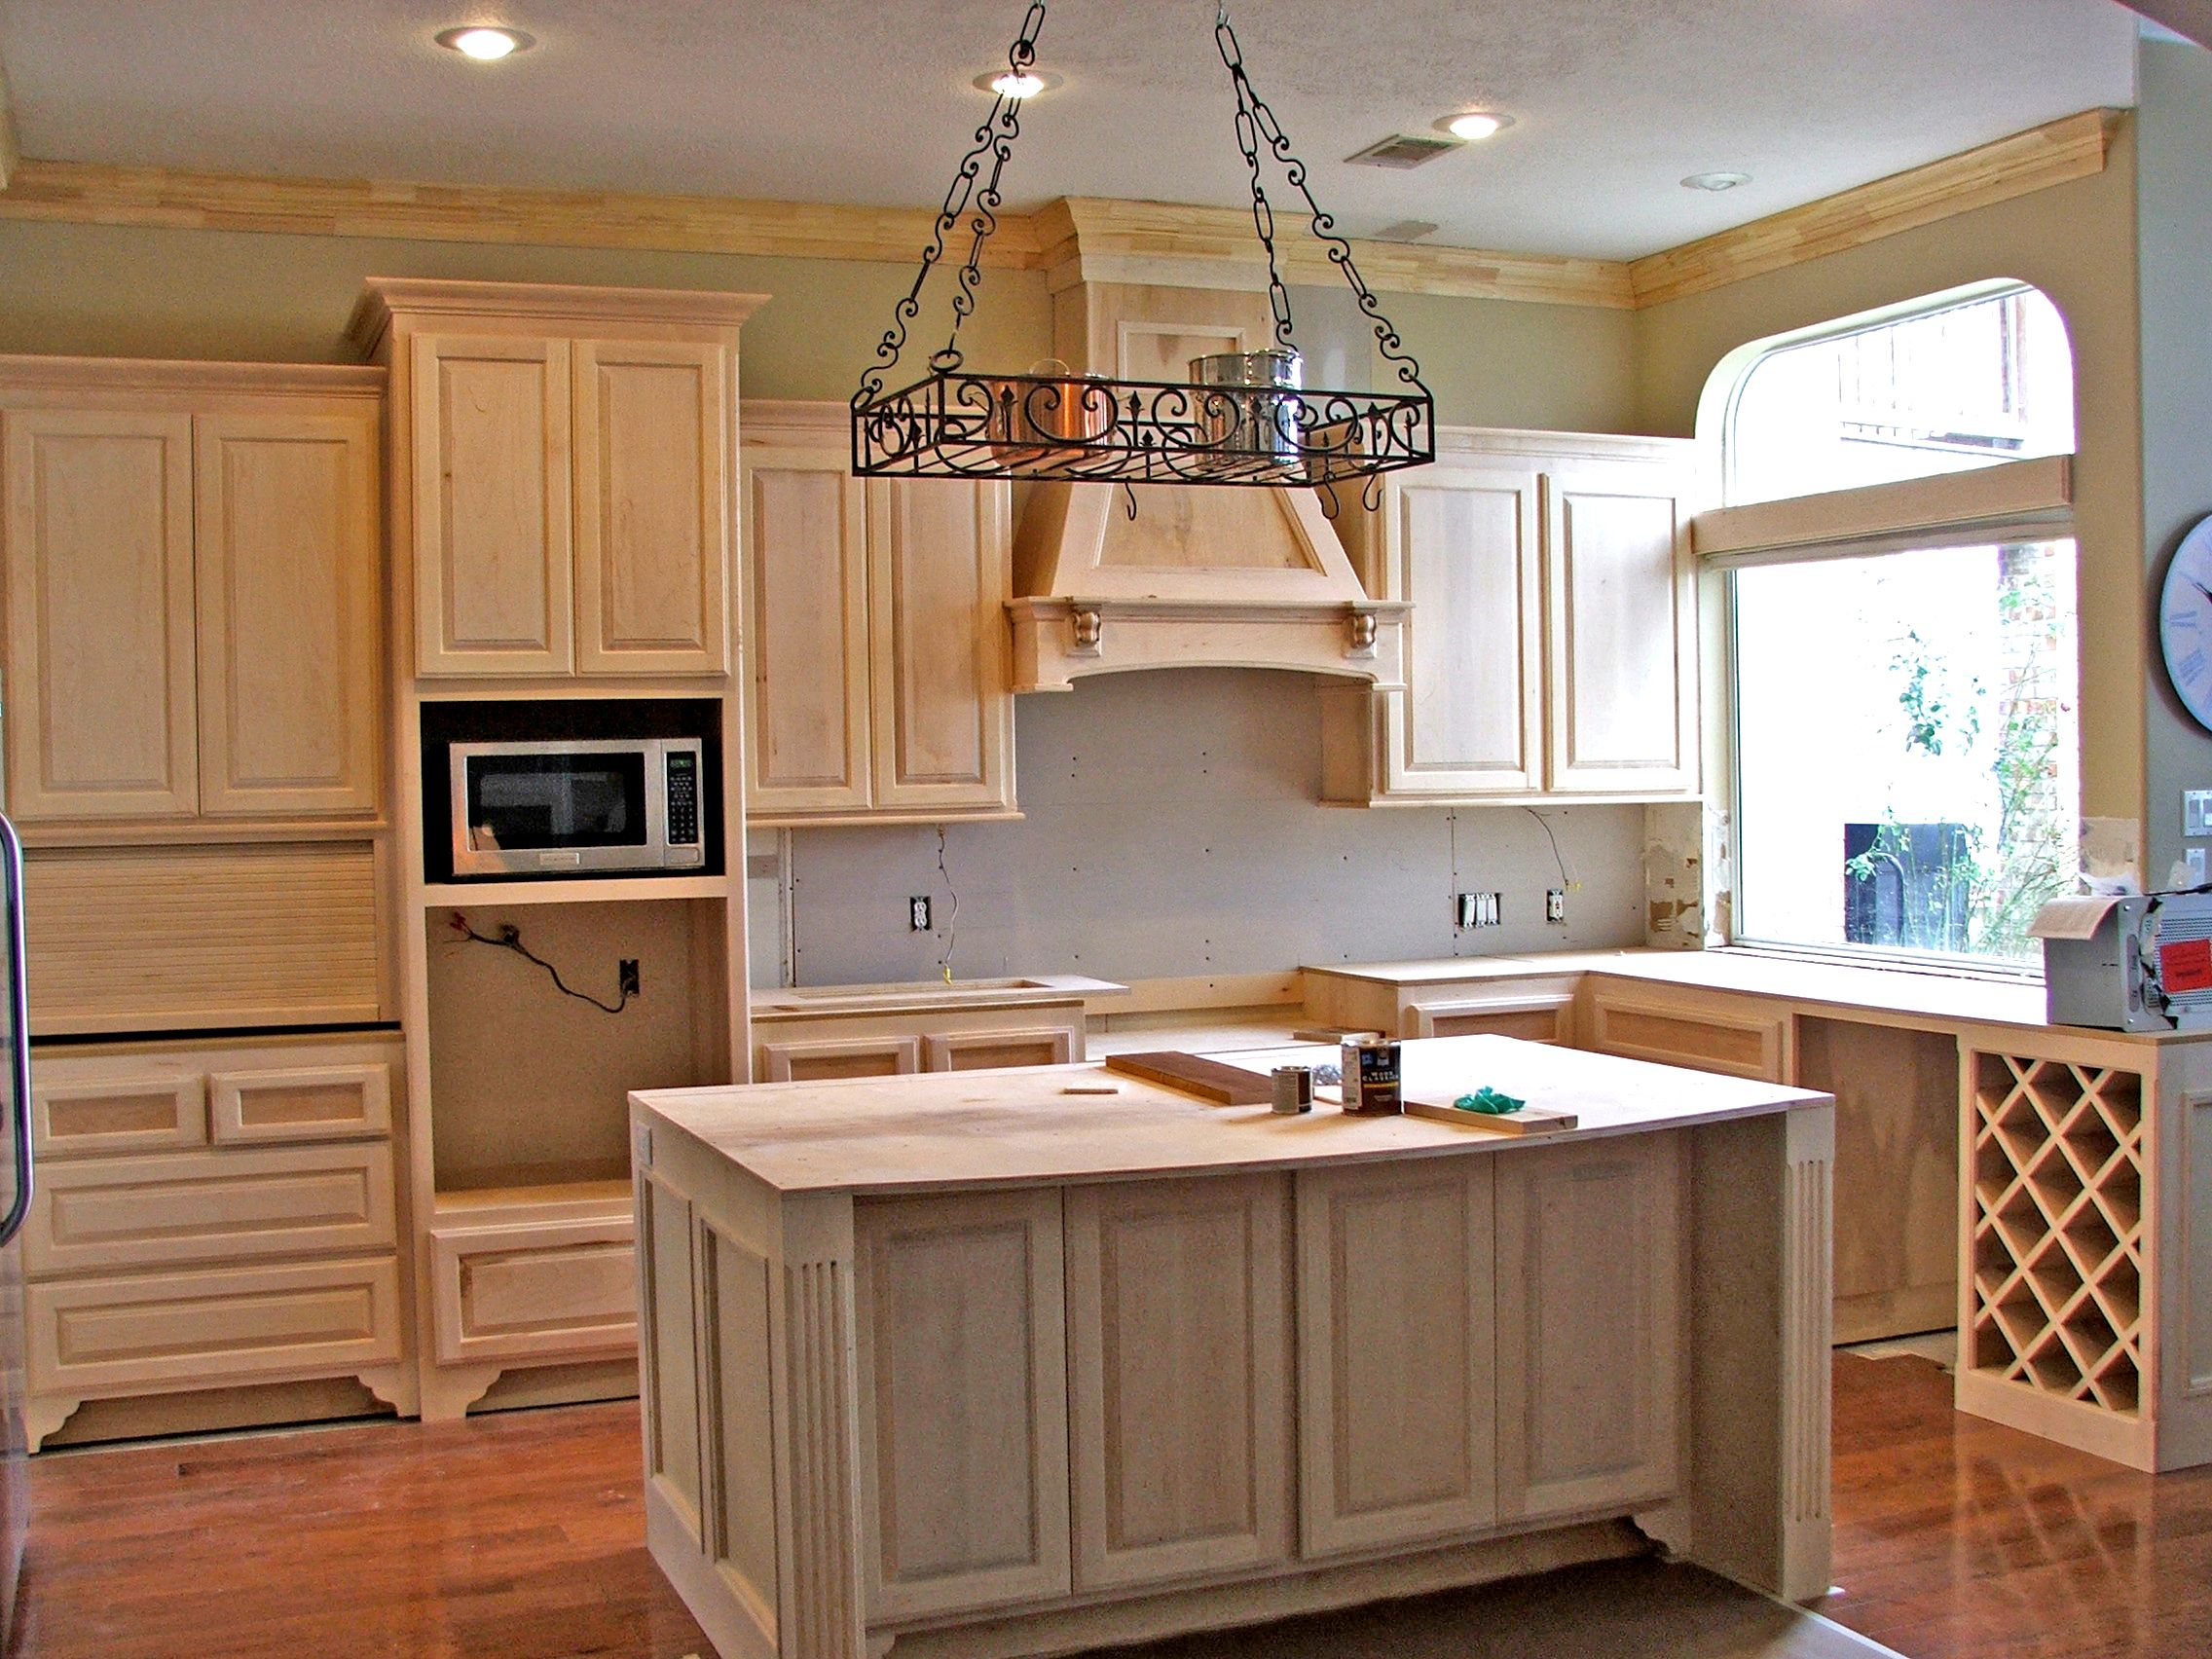 Nine Red School Of Restoration Color Wash Pine Furniture White Washed Furniture Knotty Pine Cabinets